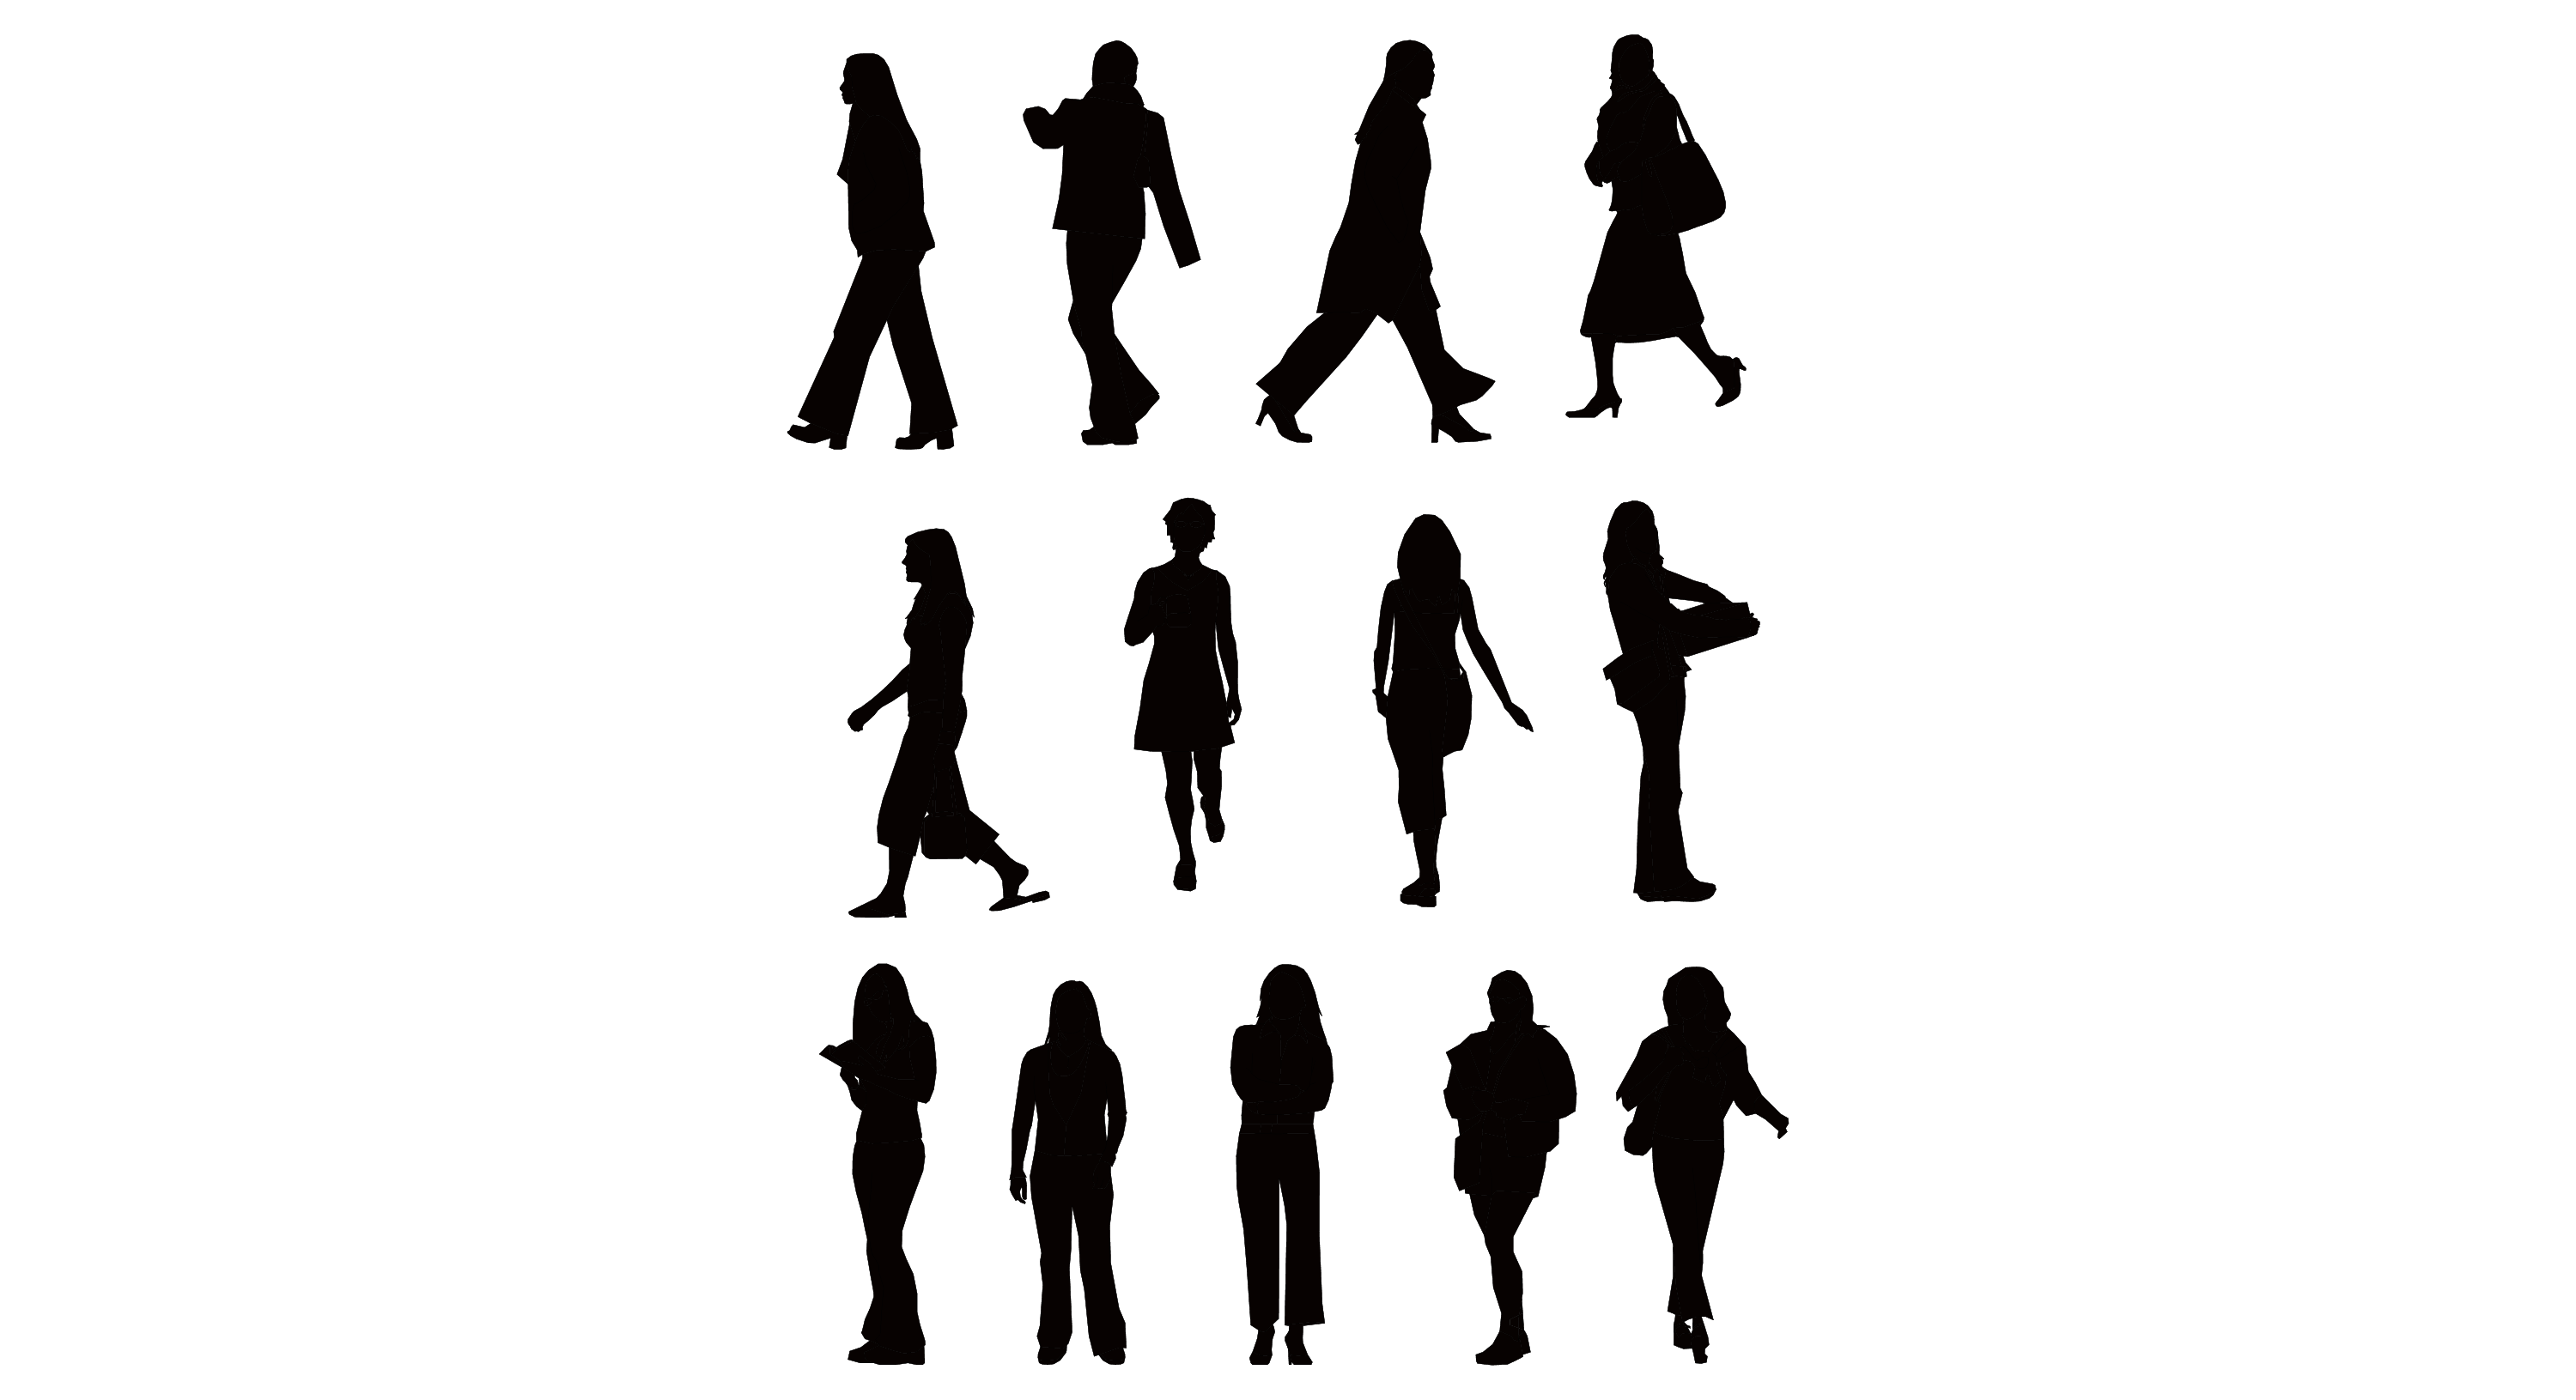 Business People Silhouette Clip Art At Getdrawings